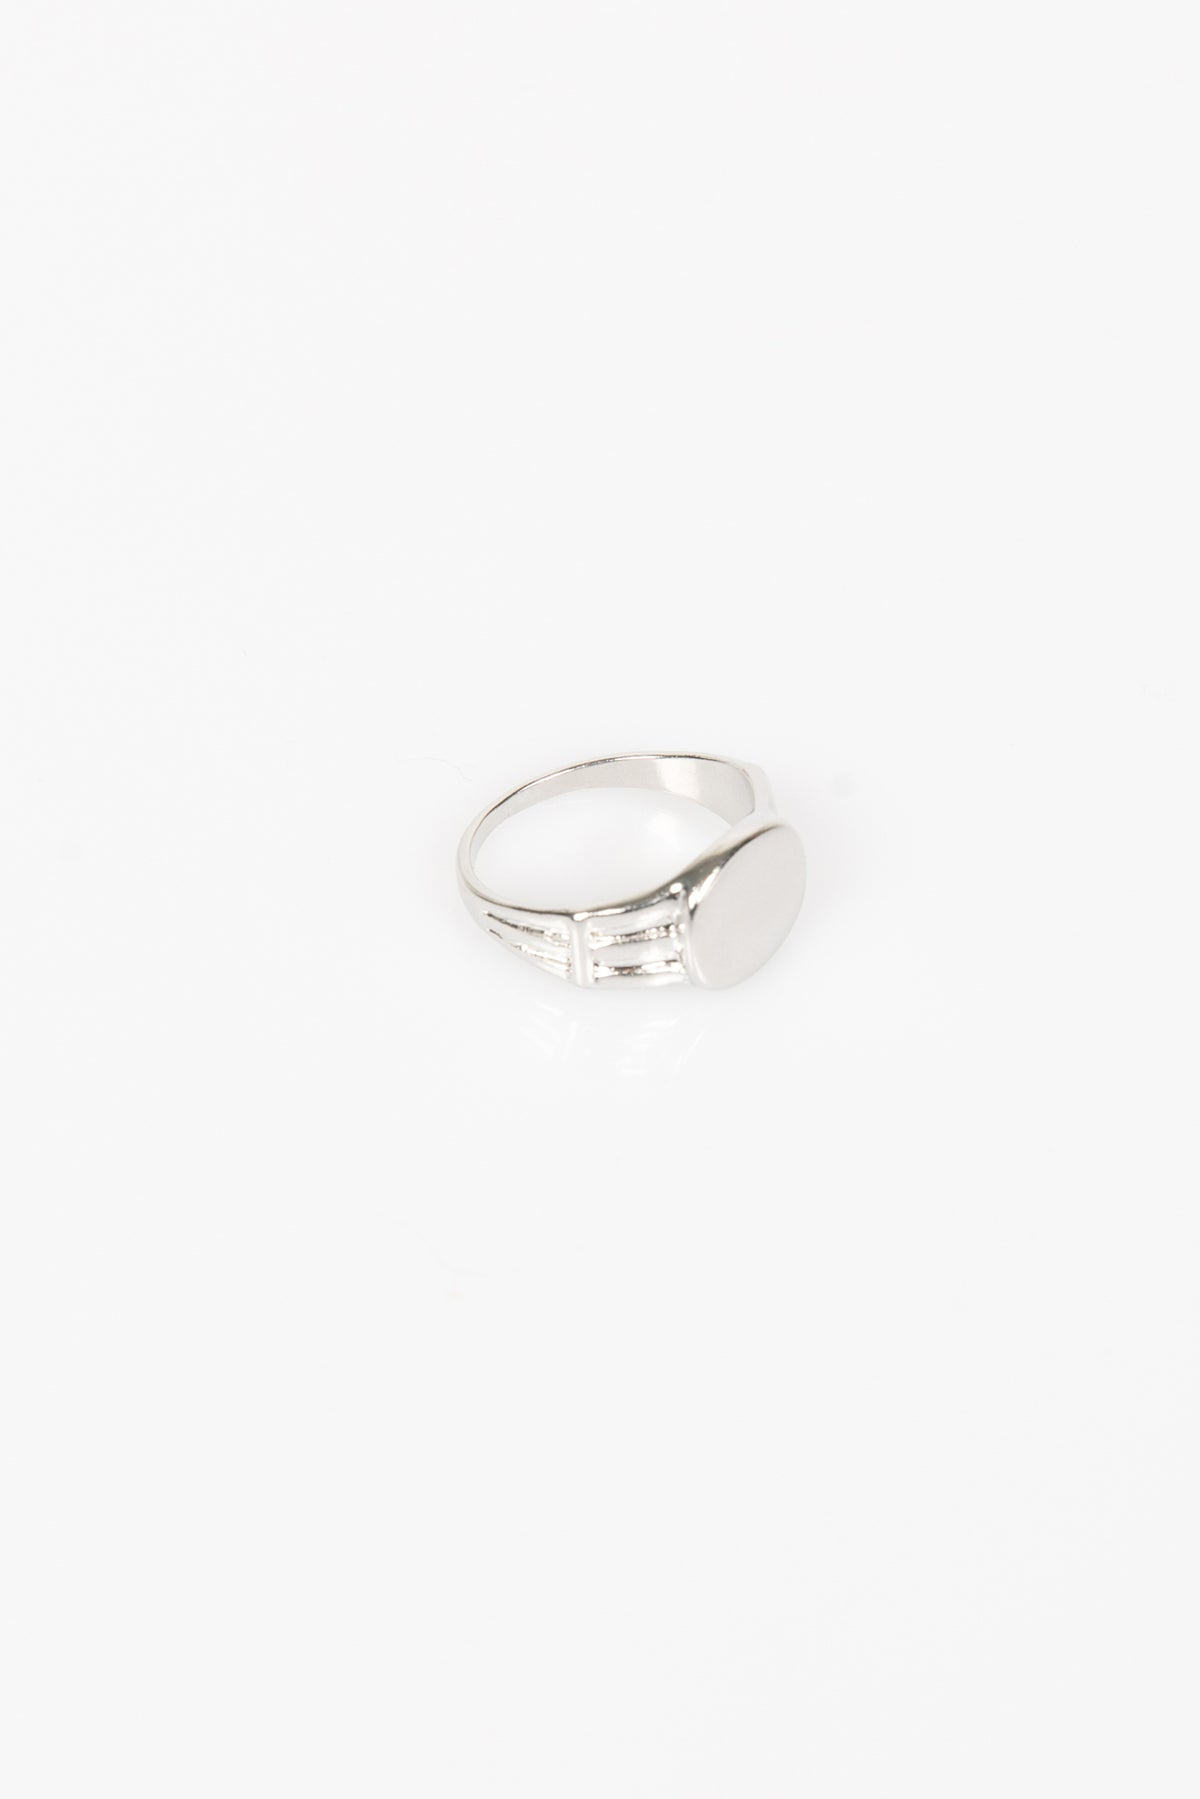 Nth Oval Ring Silver